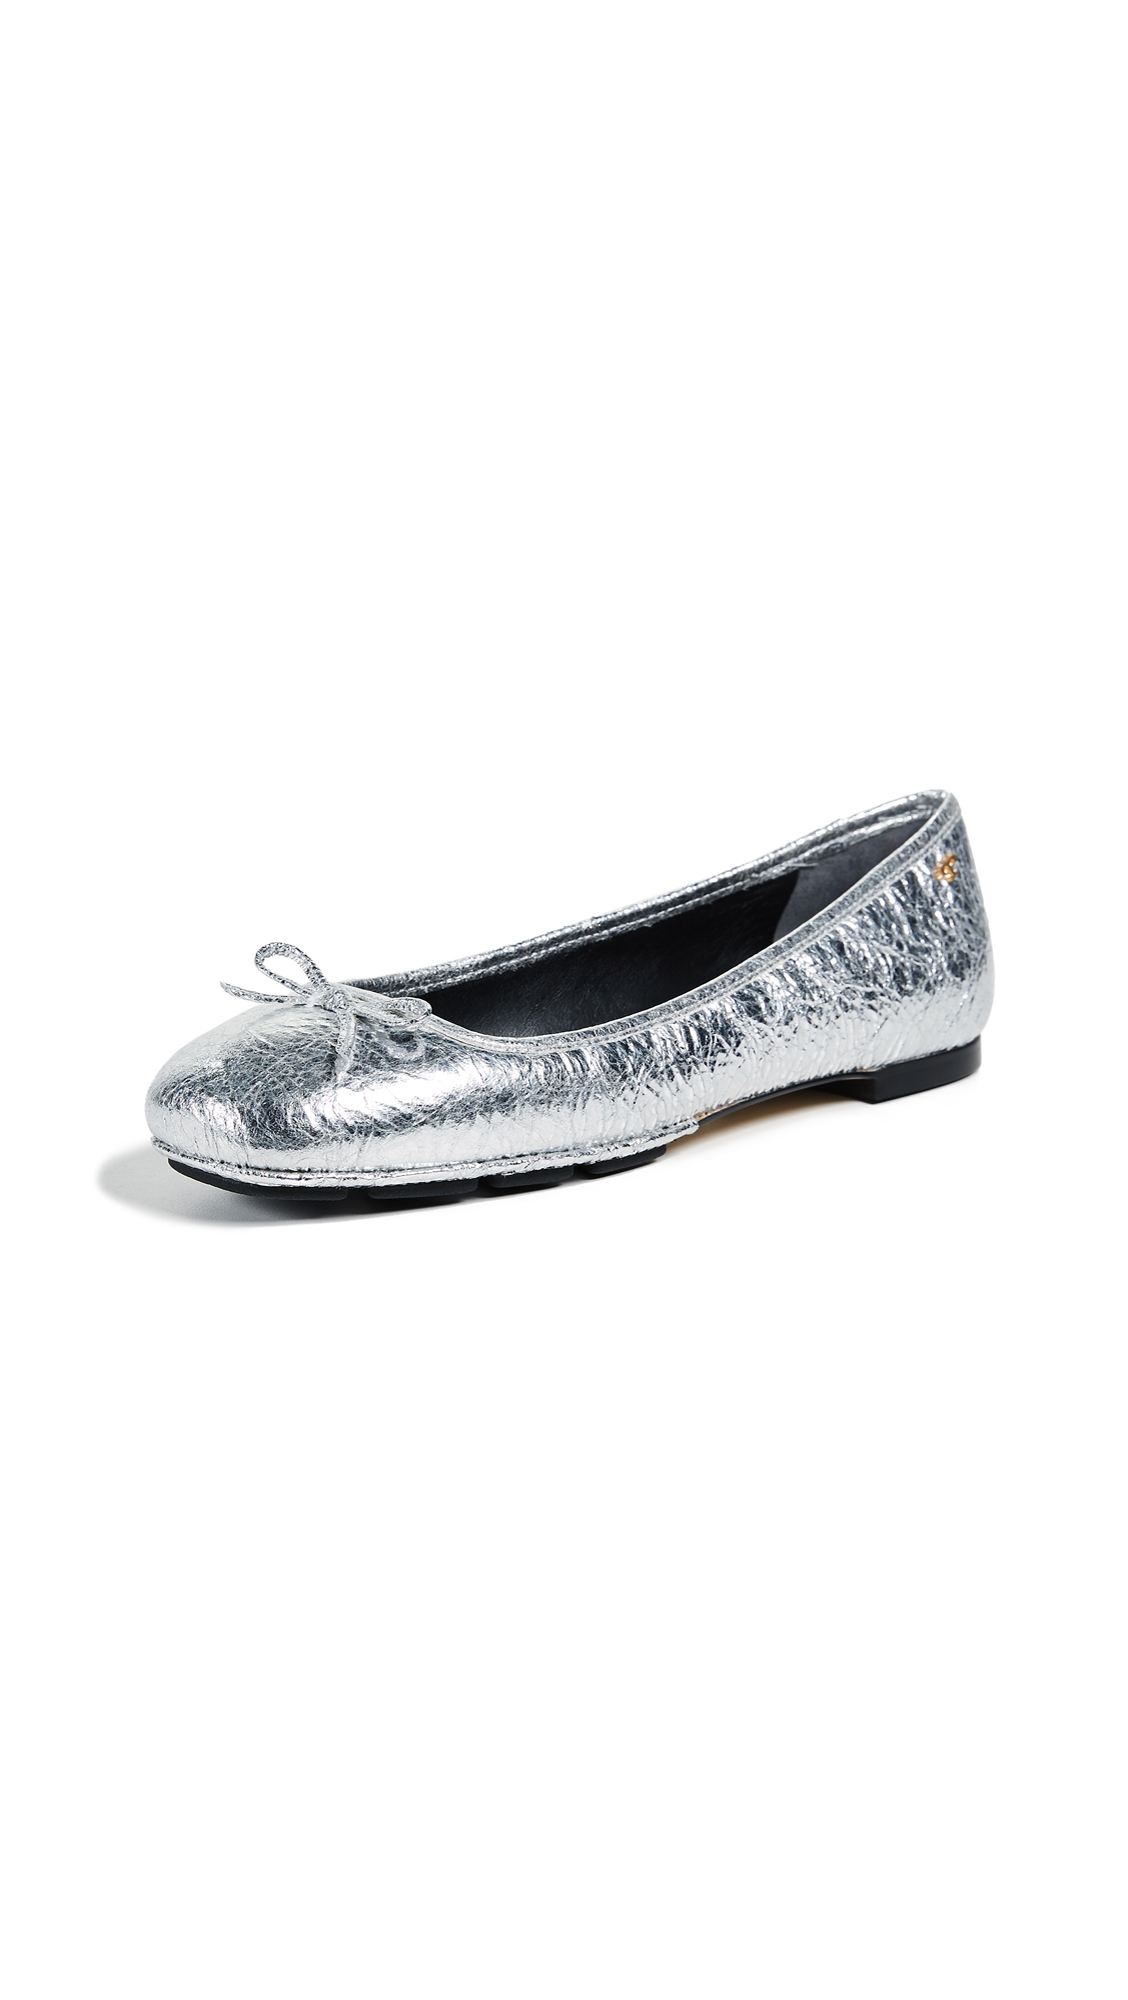 Tory Burch Laila 2 Driver Ballet Flats - Silver/Perfect Black